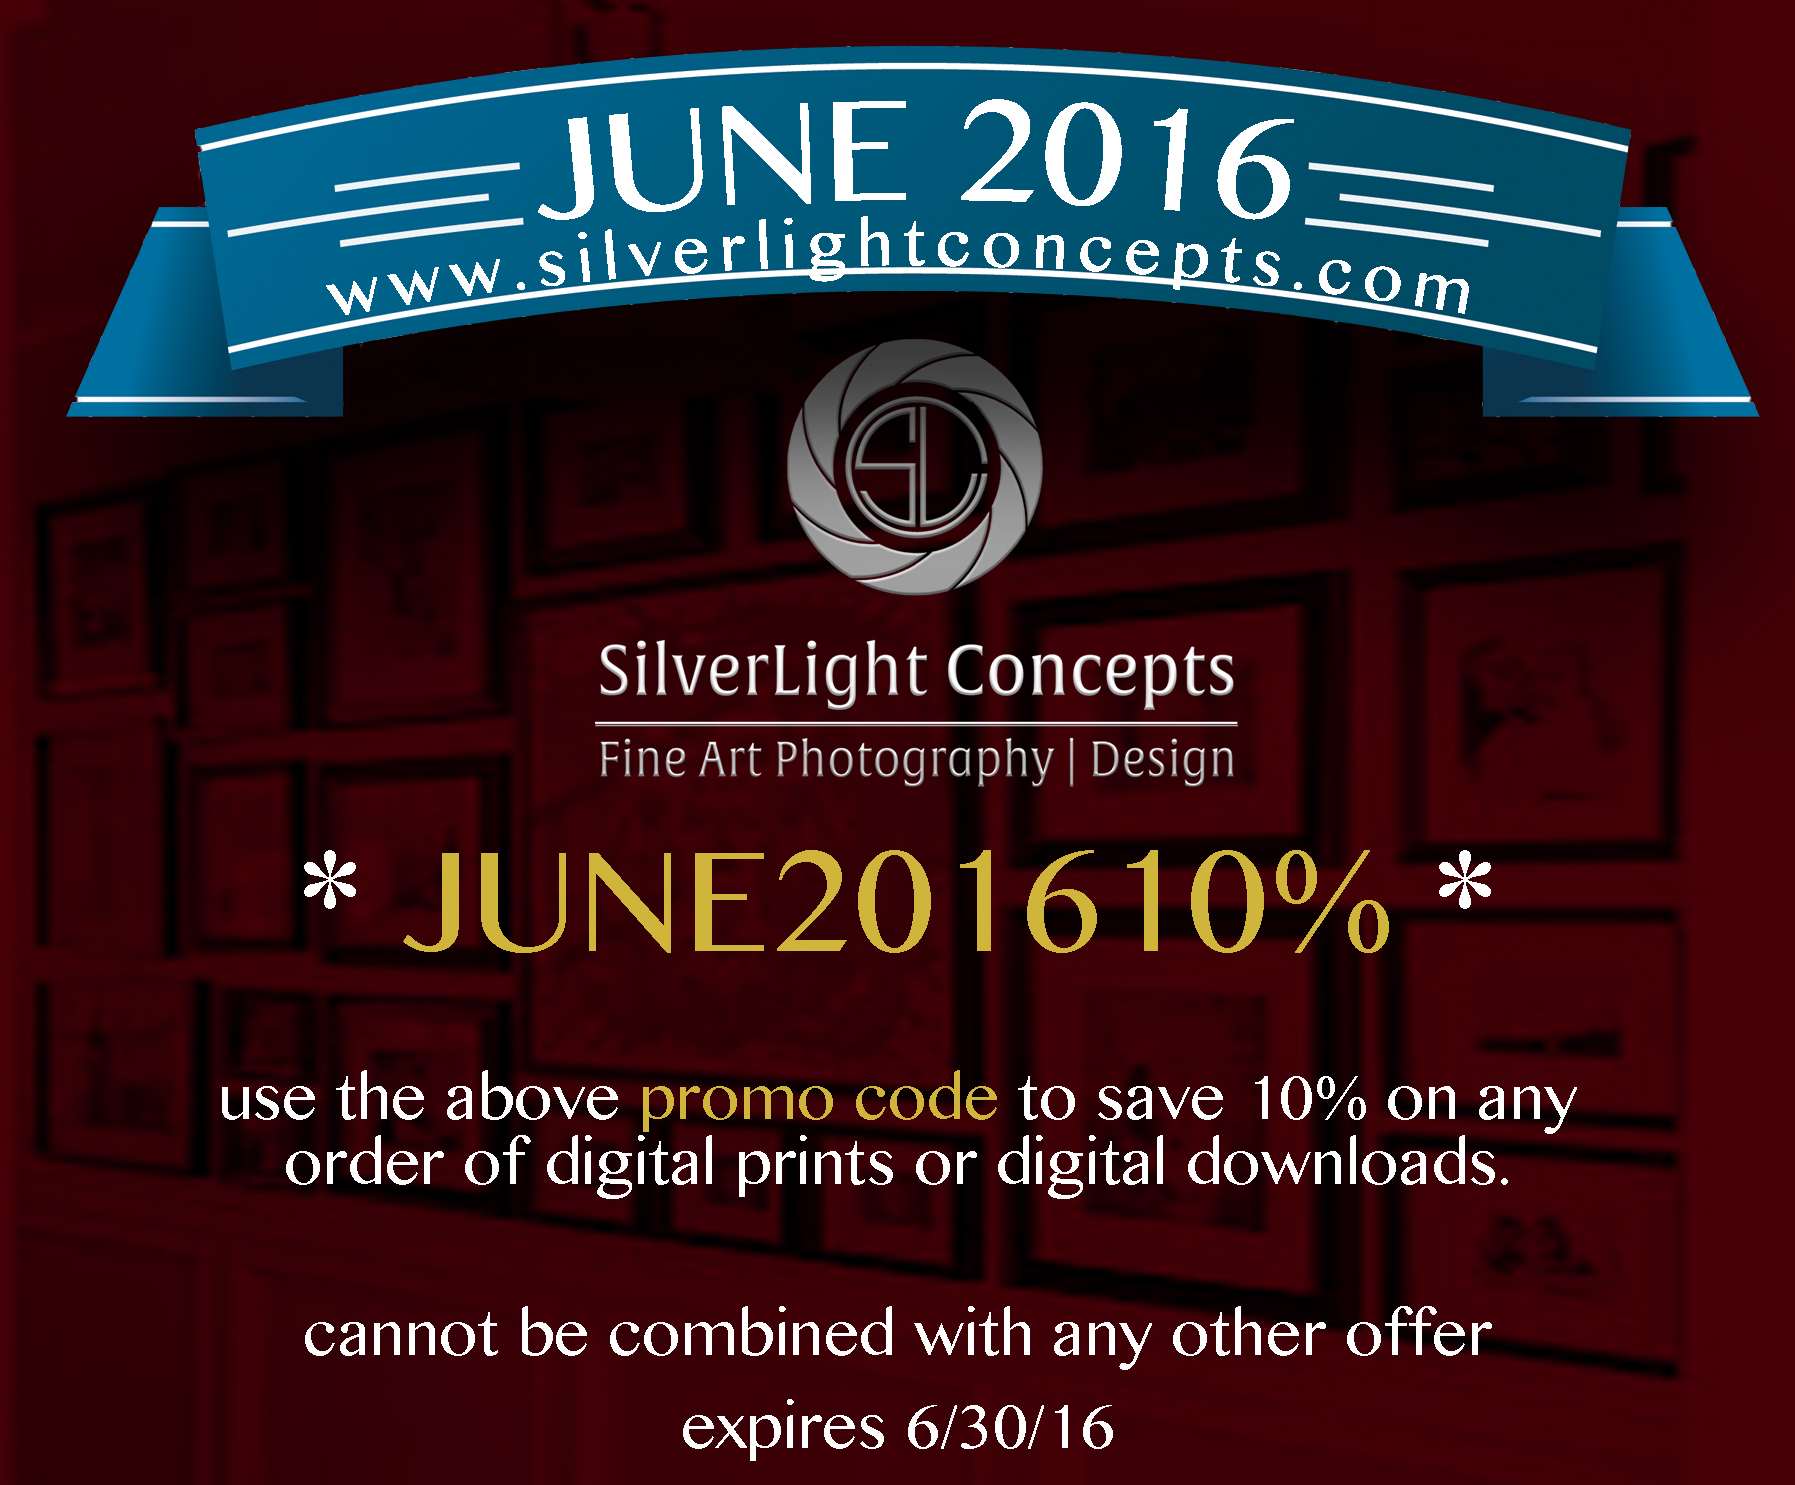 silverlightconcepts.com